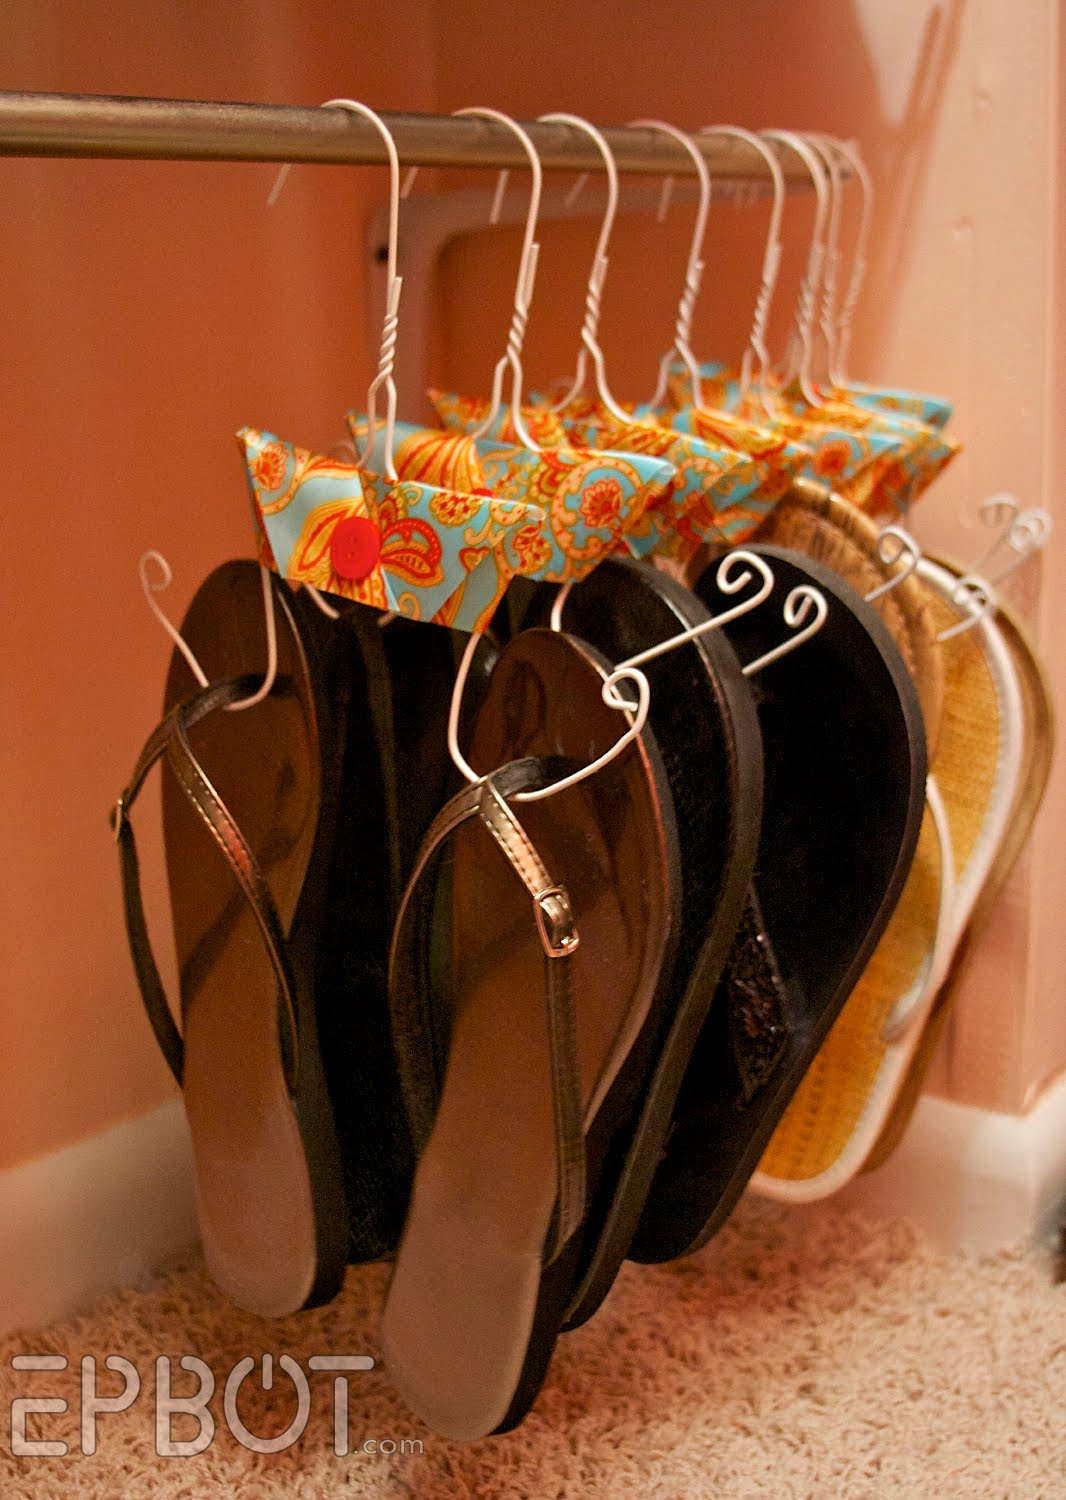 share a creative diy shoe rack arts crafts home